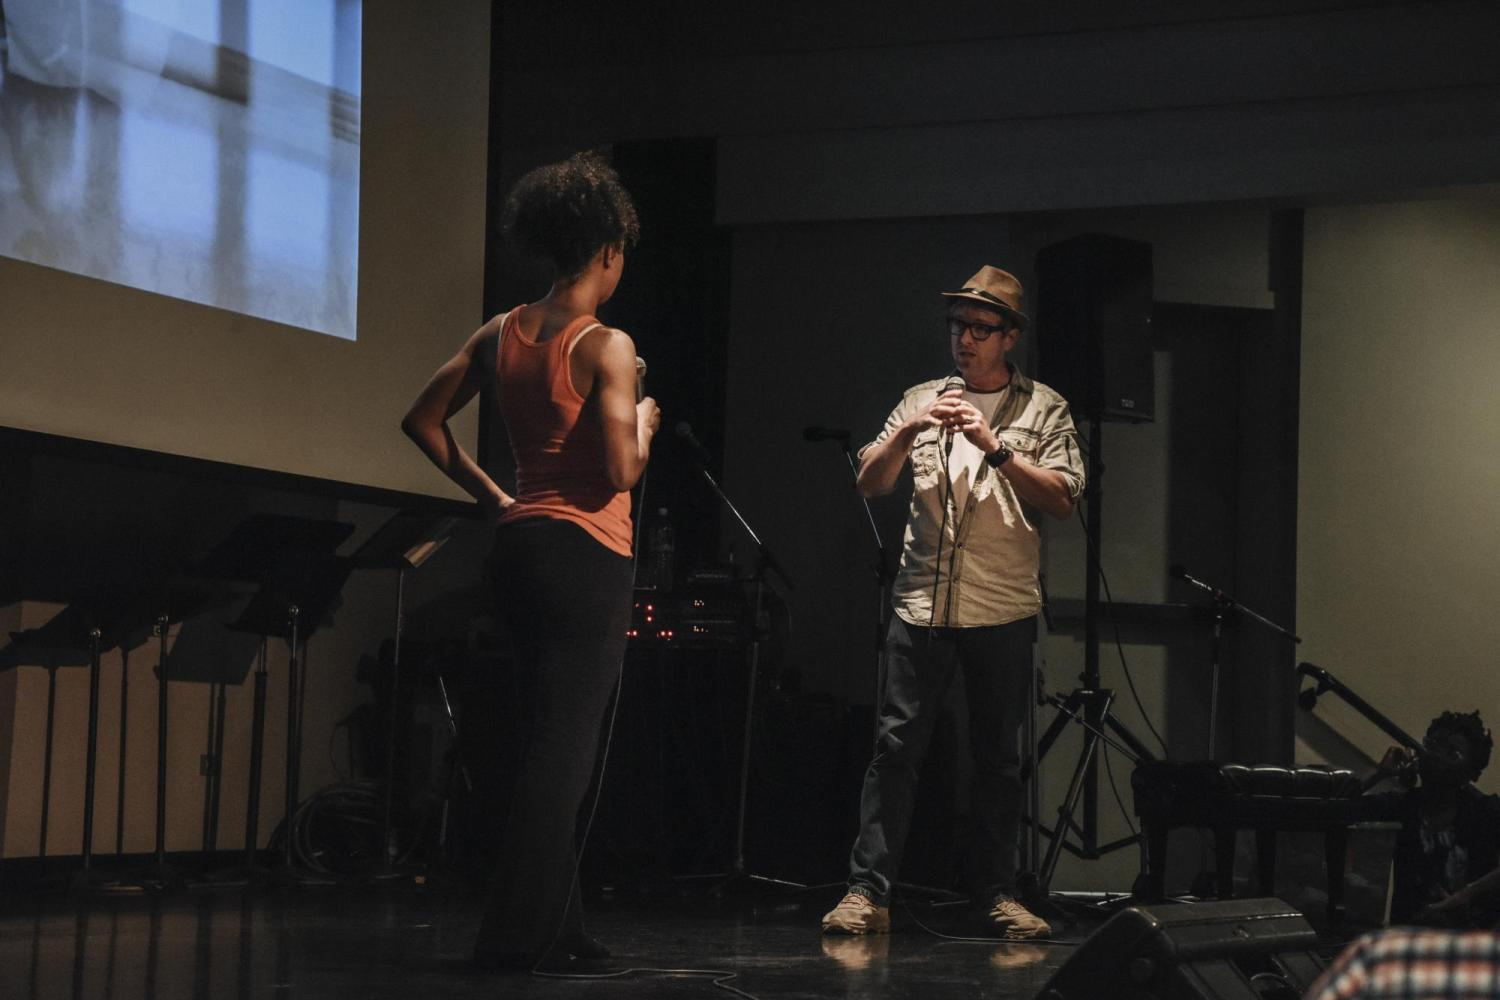 Gesel Mason and Daniel Beahm on stage